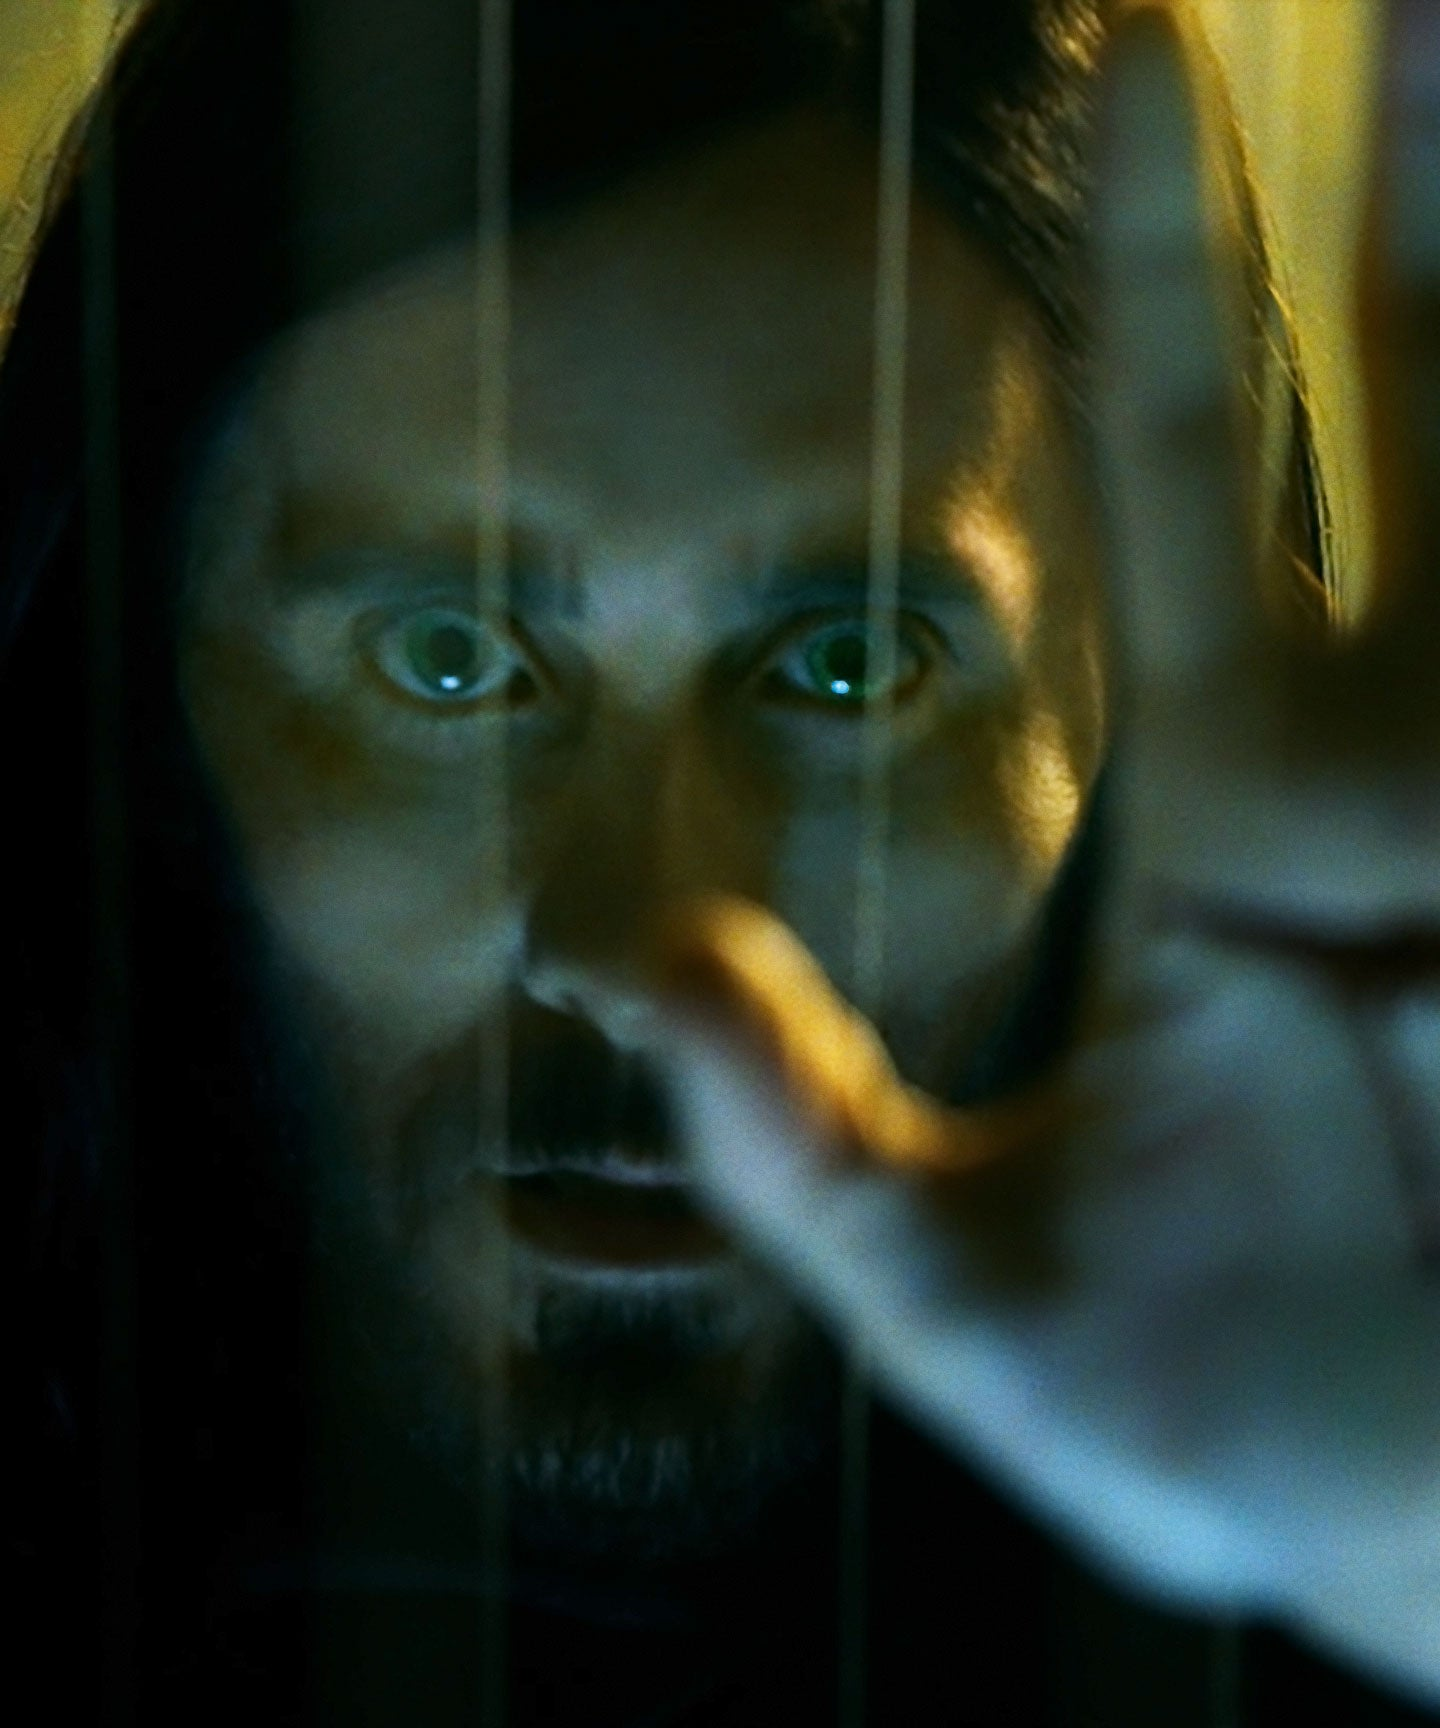 Jared Leto's New Vampire Marvel Movie Looks Like A Mess